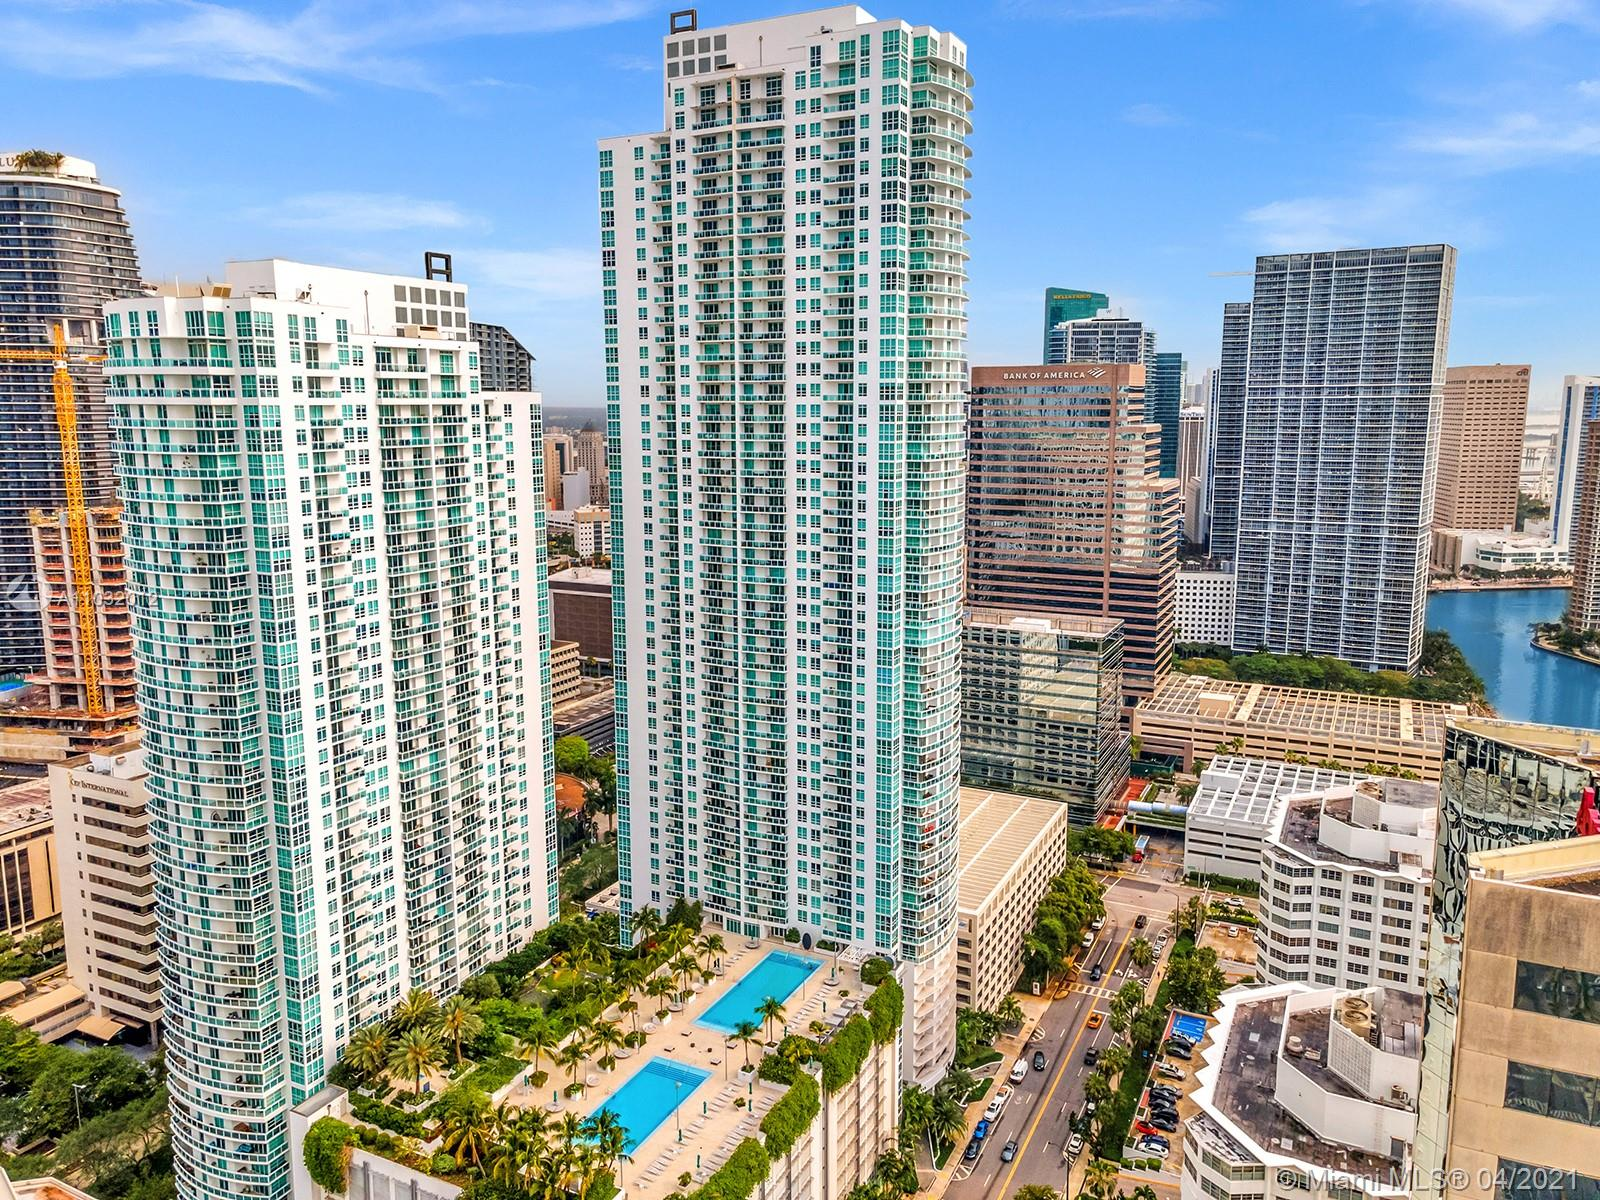 THE PLAZA 851 BRICKELL CO Condo,For Sale,THE PLAZA 851 BRICKELL CO Brickell,realty,broker,condos near me